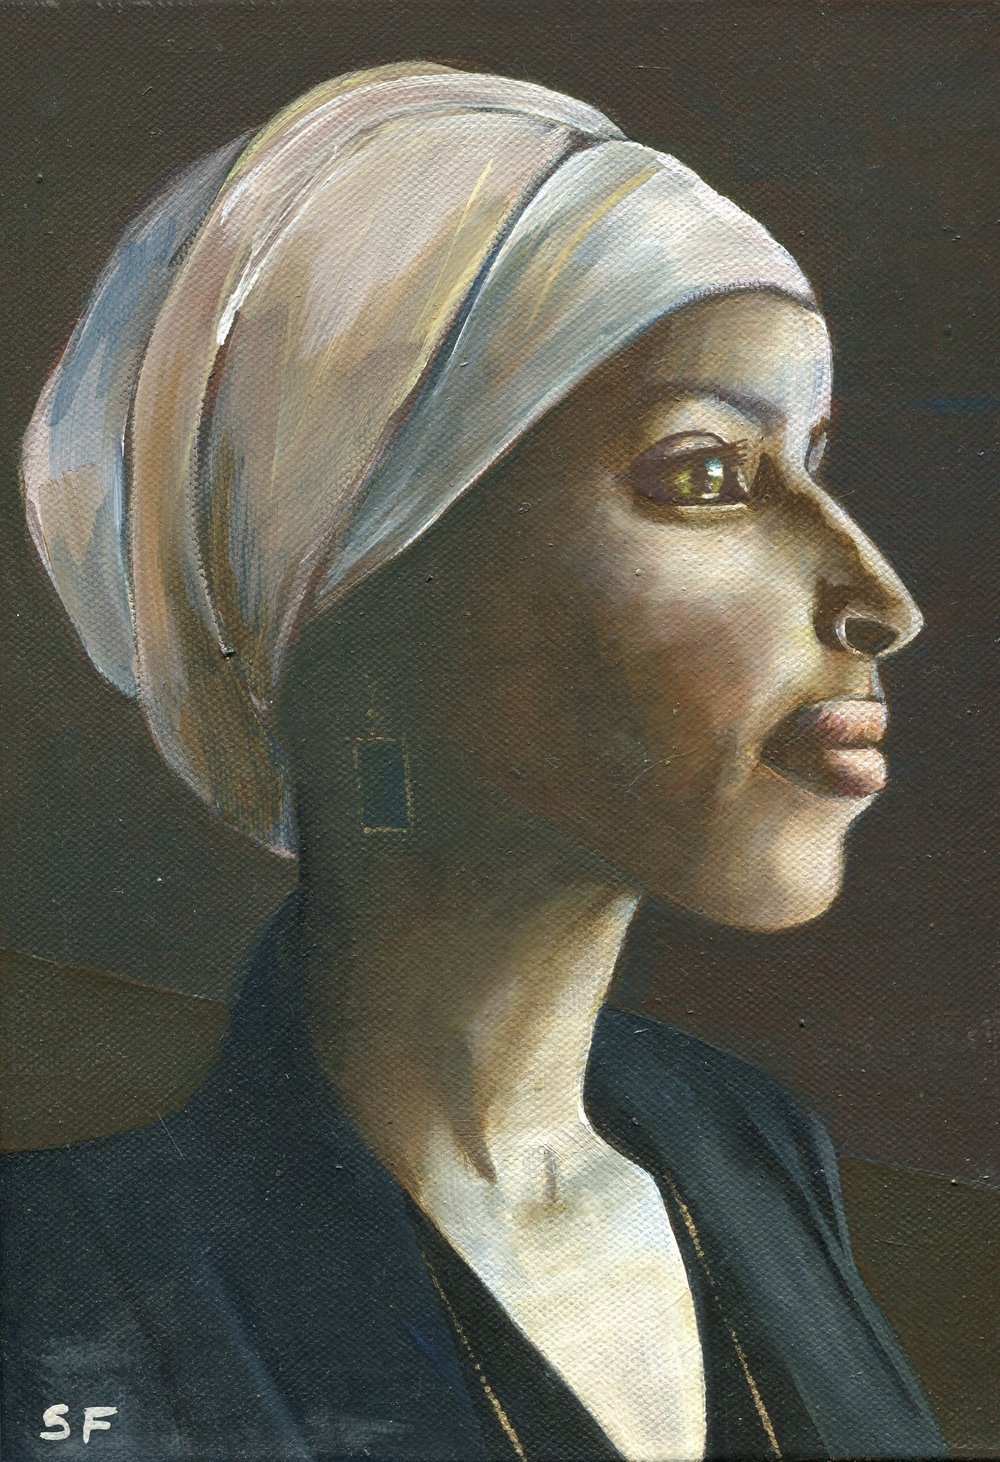 104A SUSAN FIRTH, ILHAN OMAR (FIRST SOMALI-AMERICAN MUSLIM WOMAN LEGISLATOR), OIL ON CANVAS